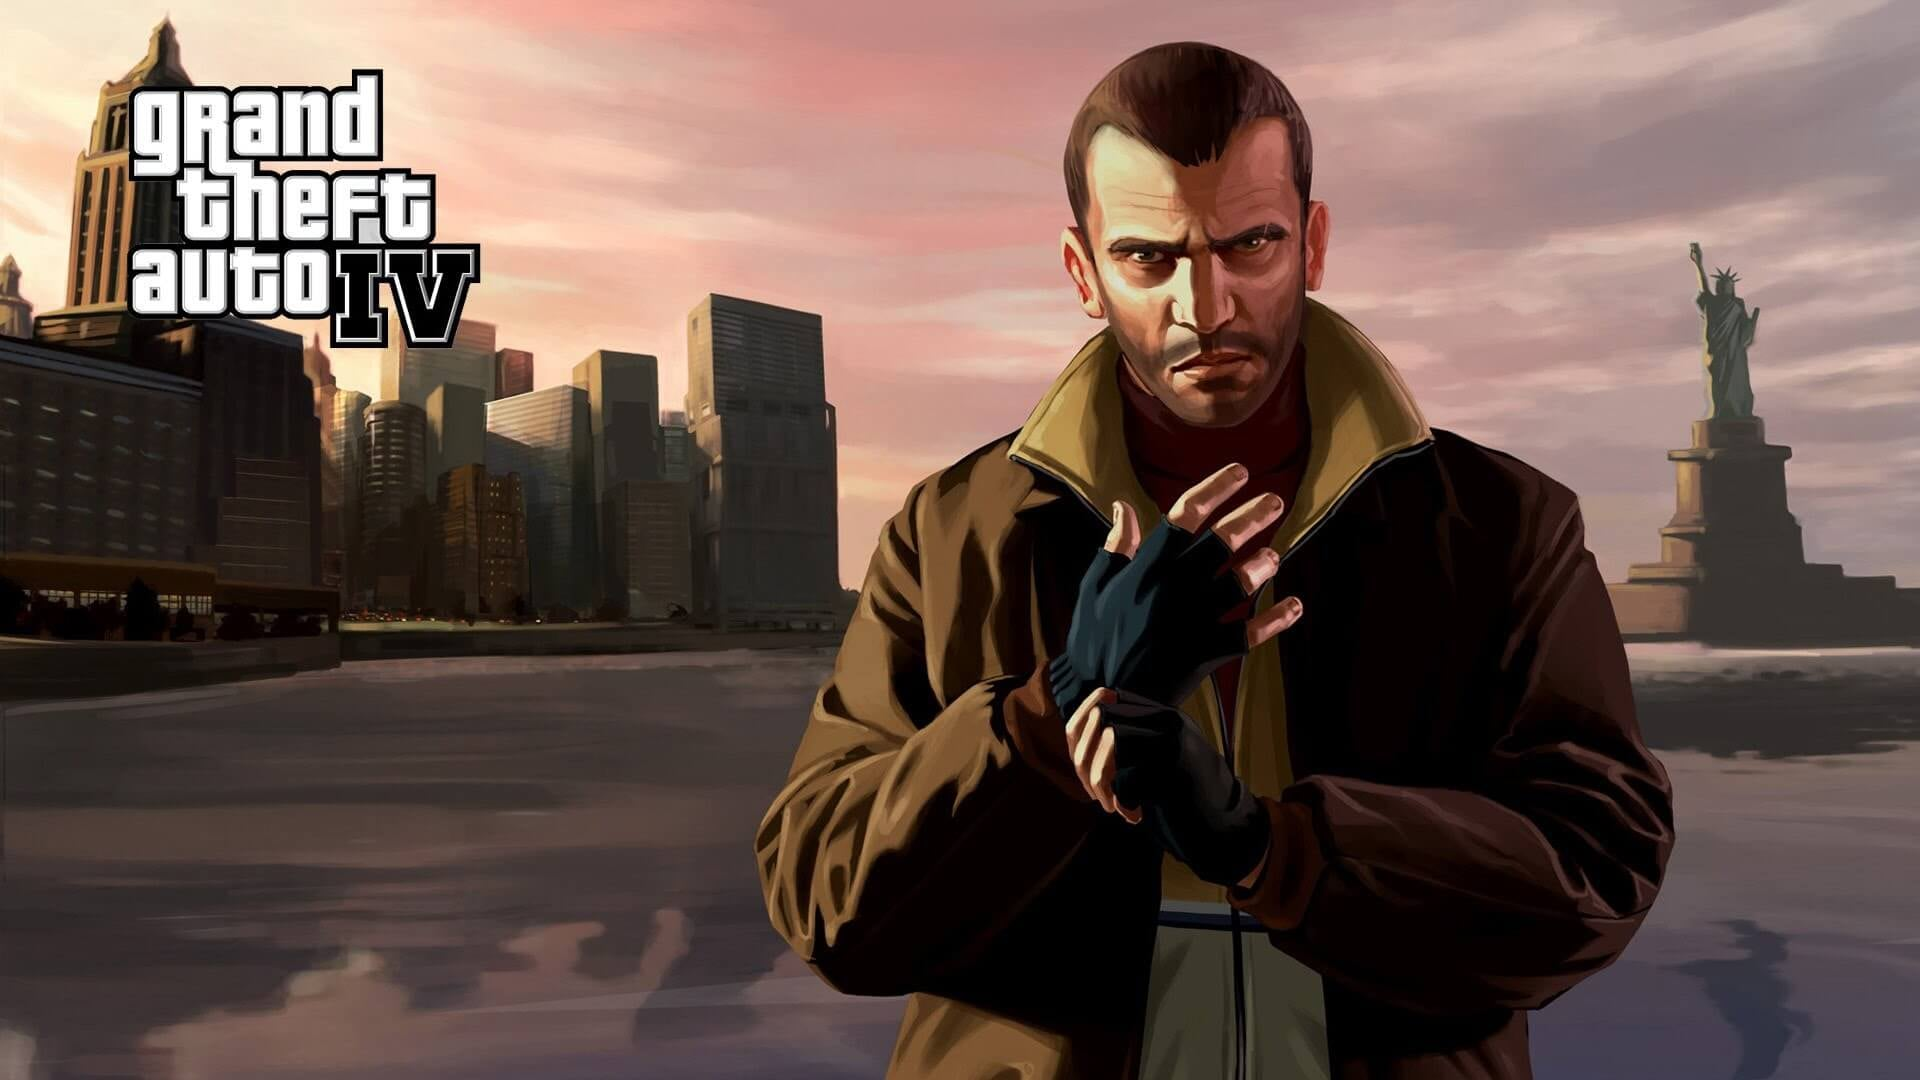 gta 5 how to transfer character from xbox 360 to xbox one 2018